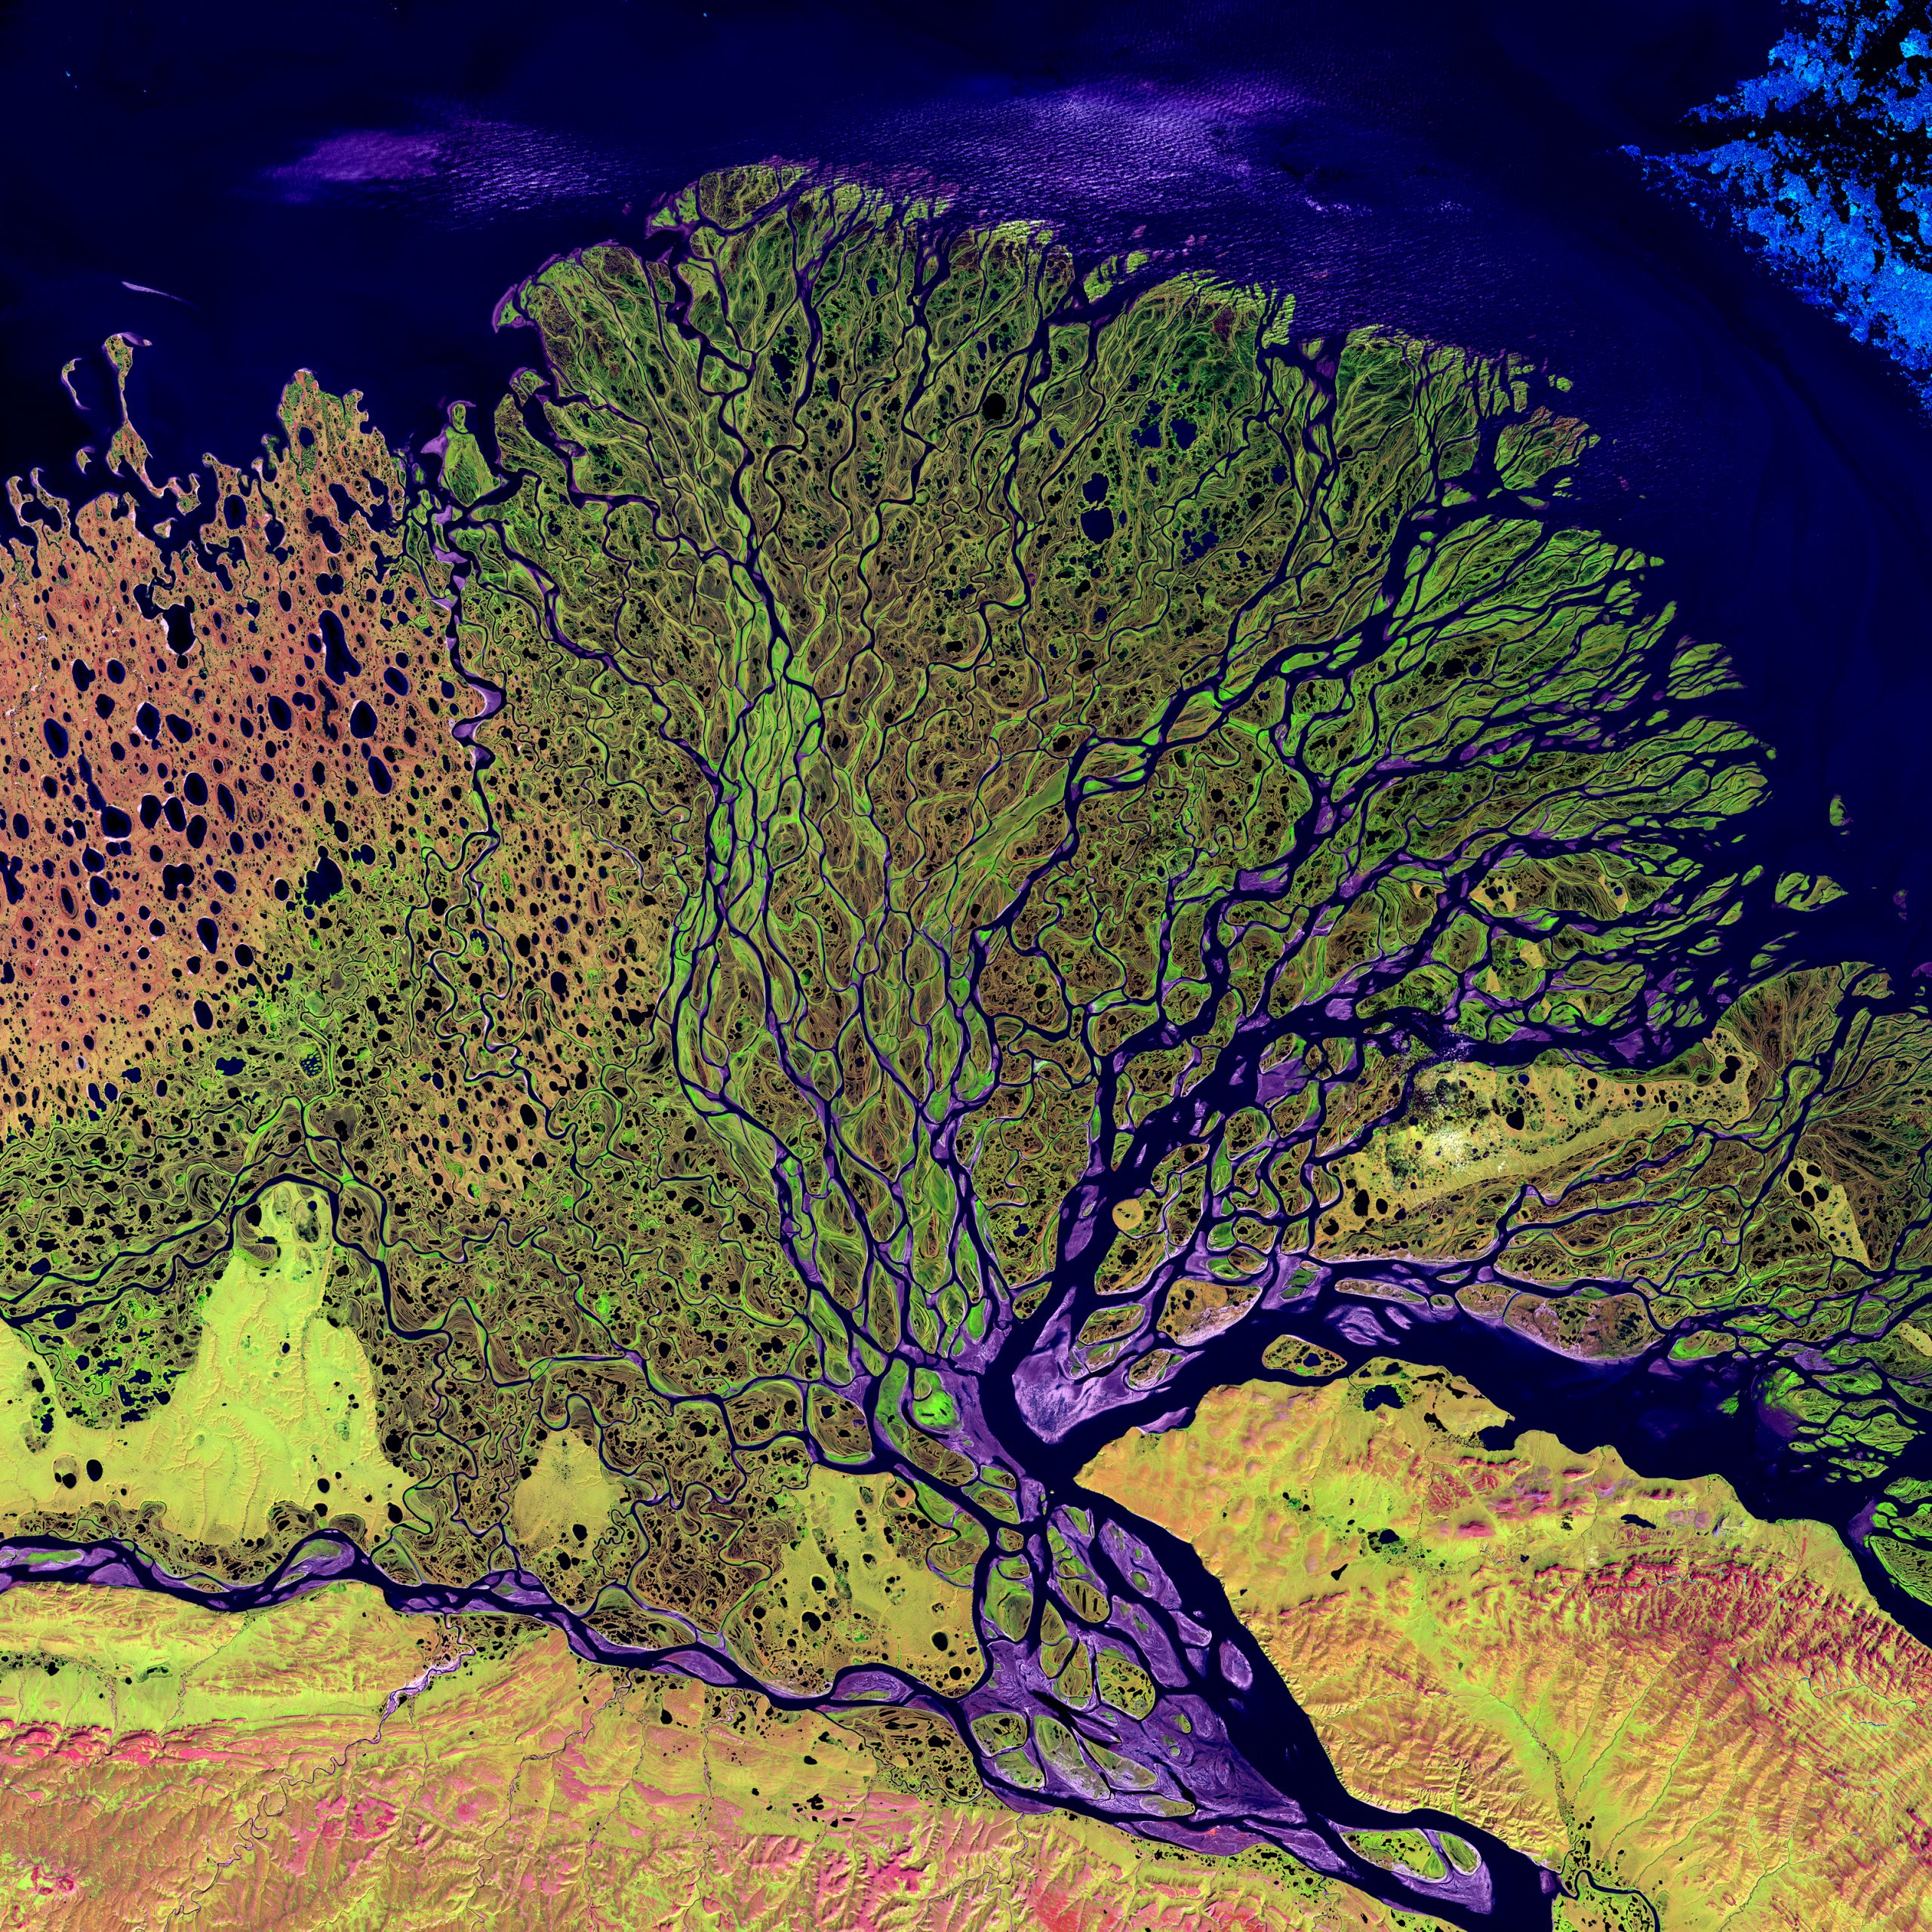 This image of the Lena River taken was with Landsat 7. The Lena Delta Reserve is the most extensive protected wilderness area in Russia.